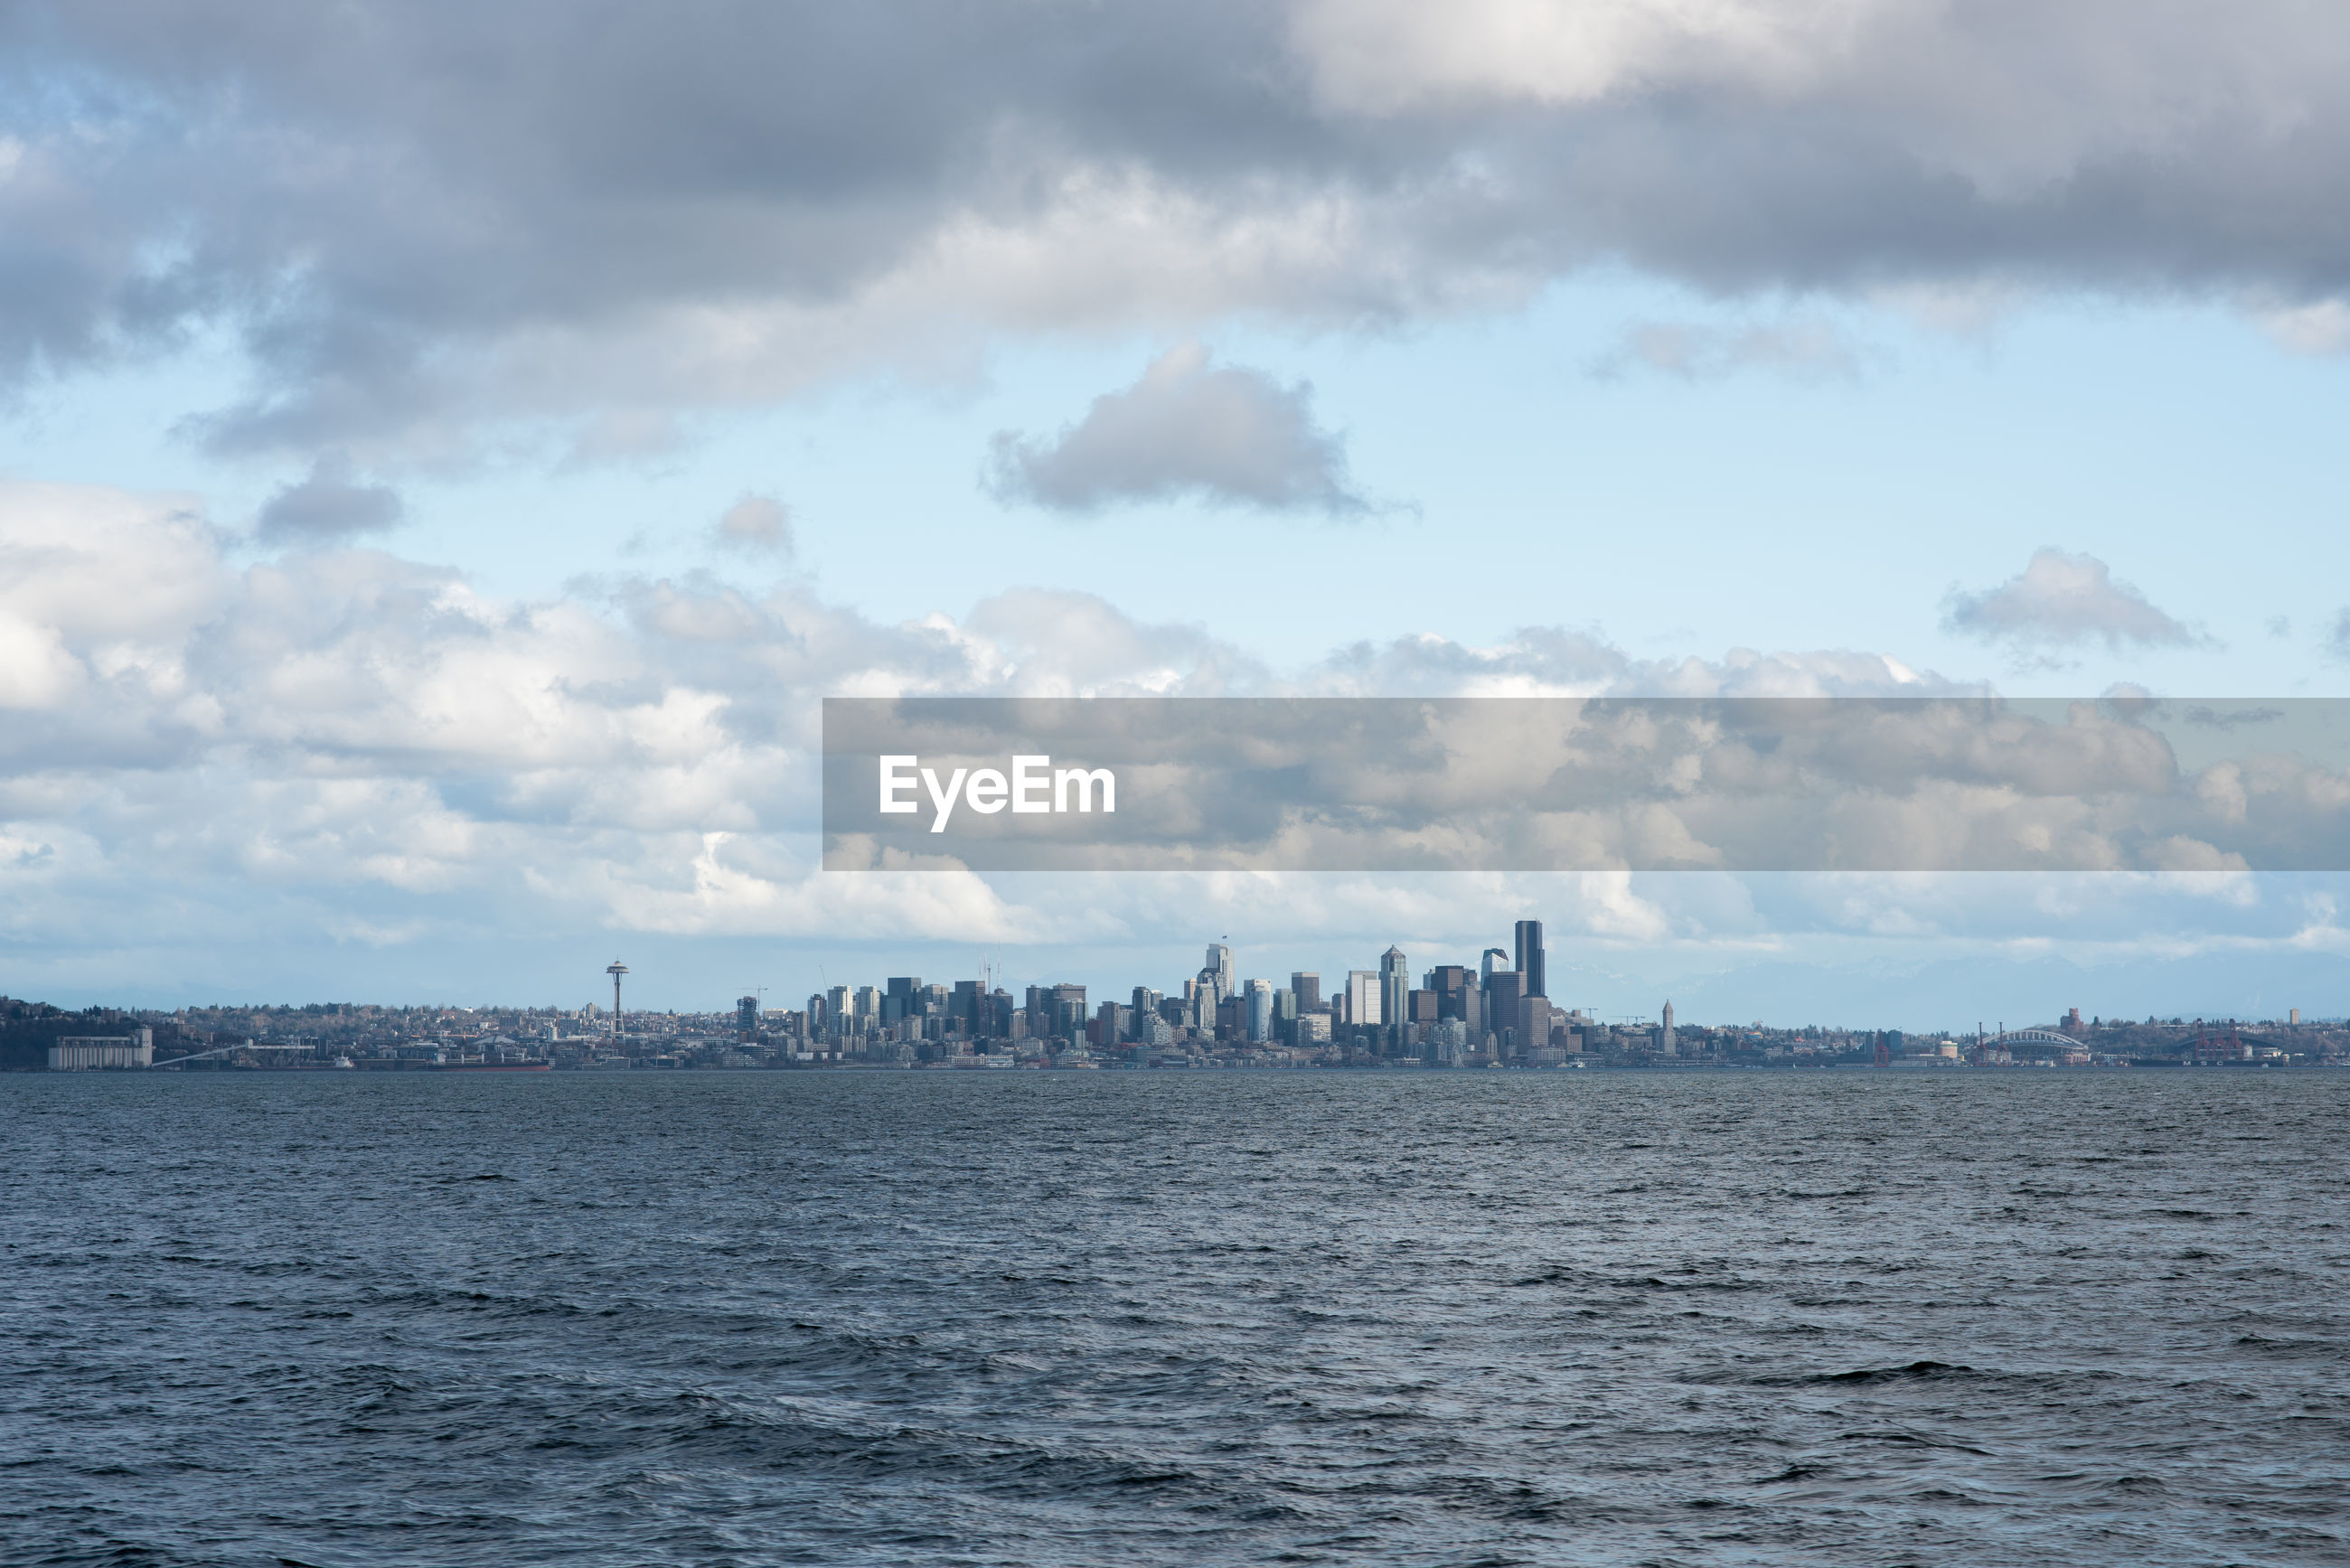 PANORAMIC SHOT OF SEA AND CITYSCAPE AGAINST SKY